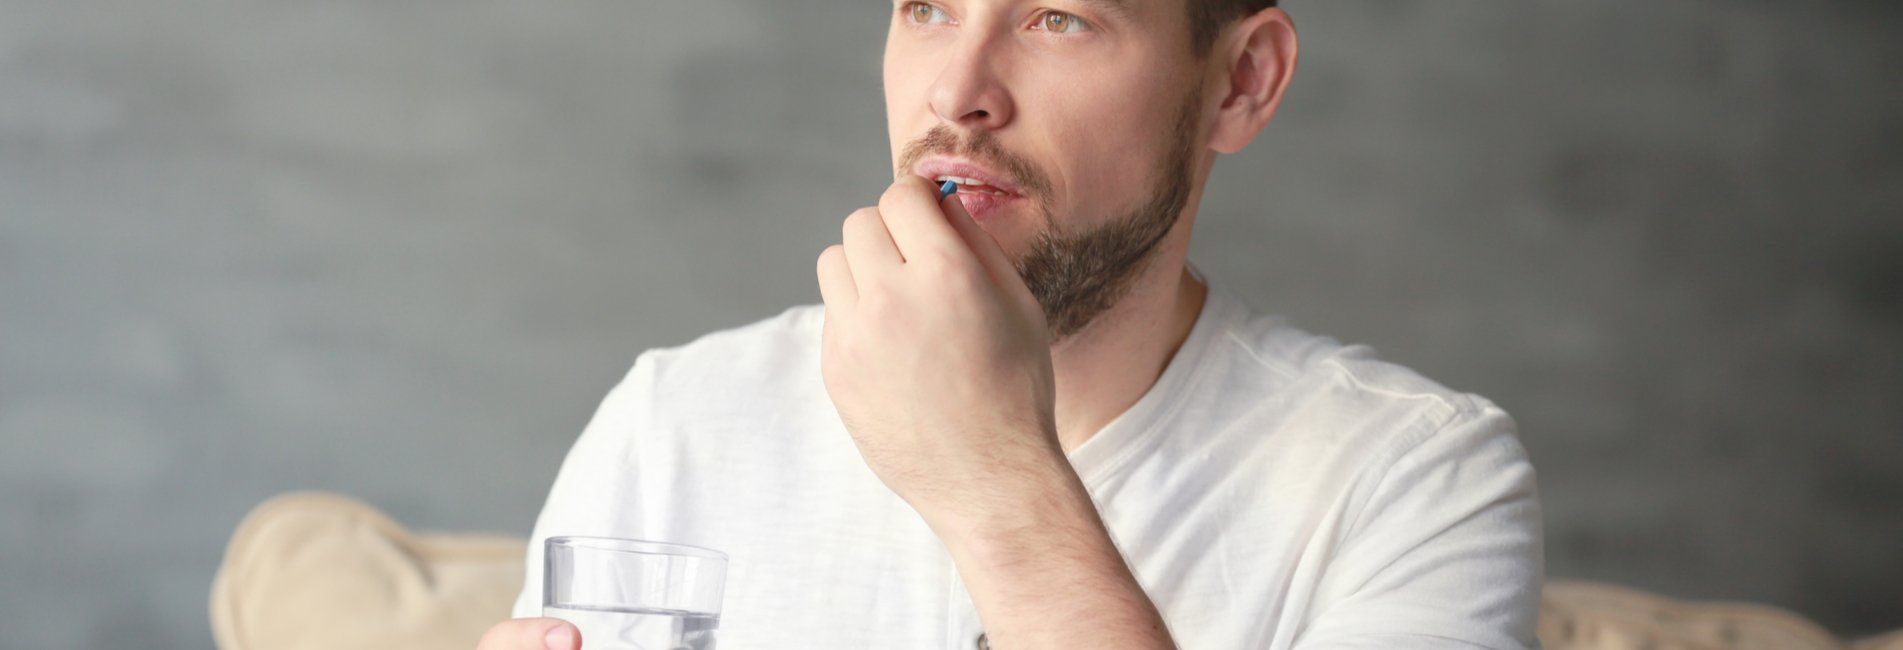 Valium Abuse and Treatment Resurgence - A young man takes another Valium in the morning with a glass of water while staring faintly in the distance knowing that he is engaging in Valium abuse and may need to seek professional treatment.